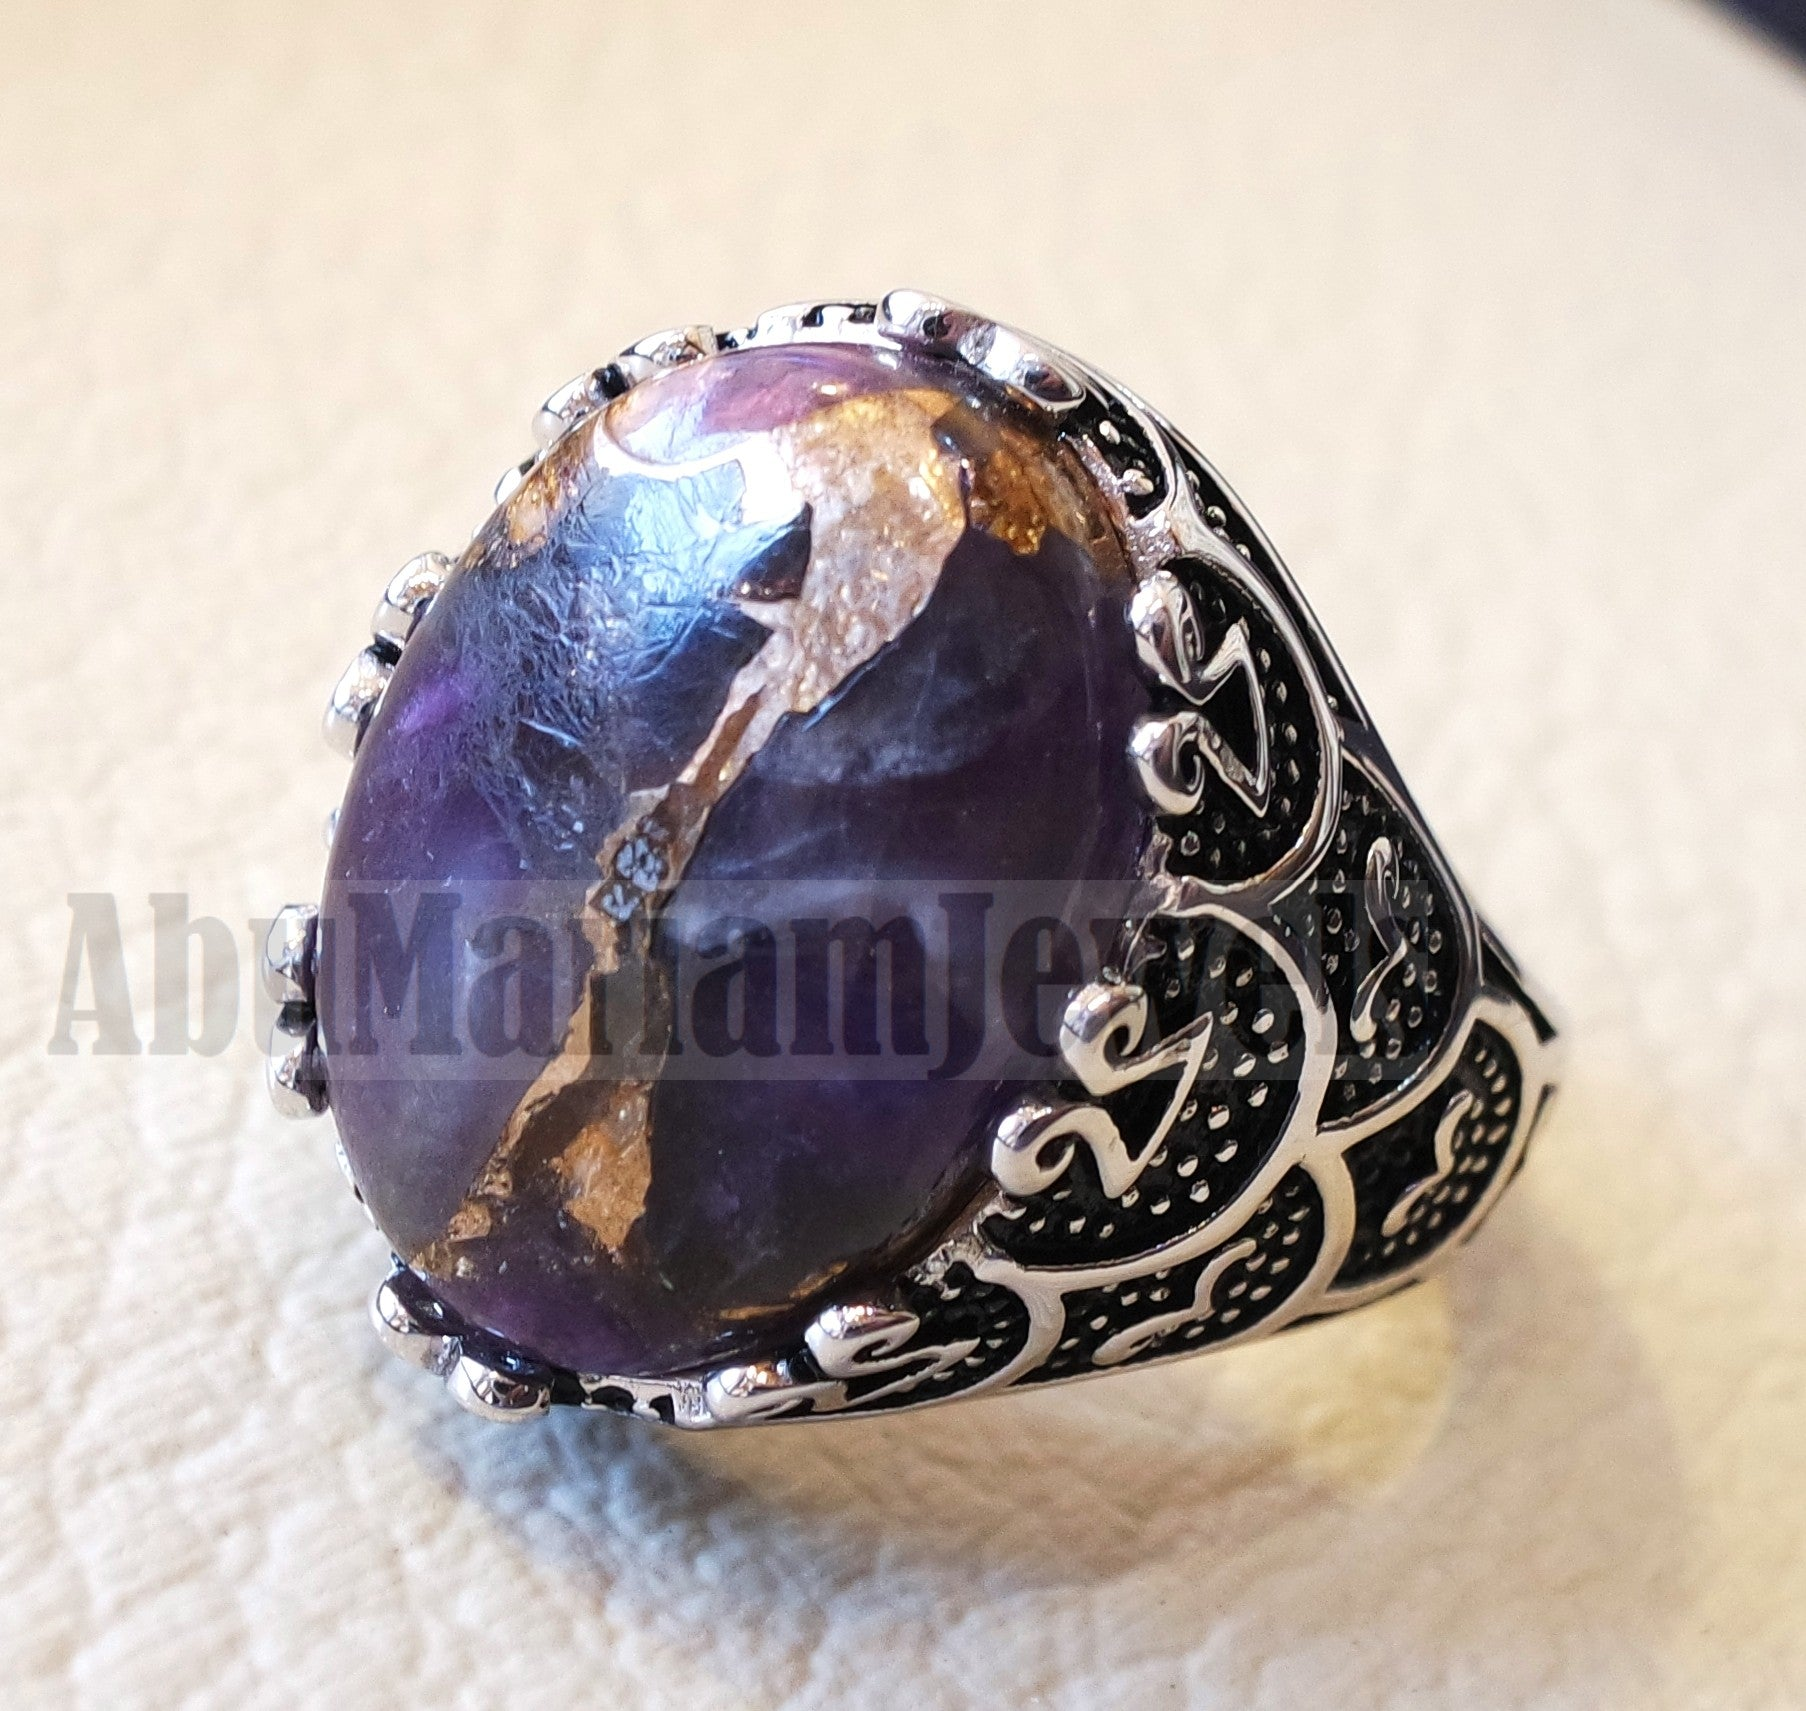 man ring copper amethyst natural purple stone sterling silver 925 oval cabochon semi precious gem ottoman arabic style all sizes jewelry